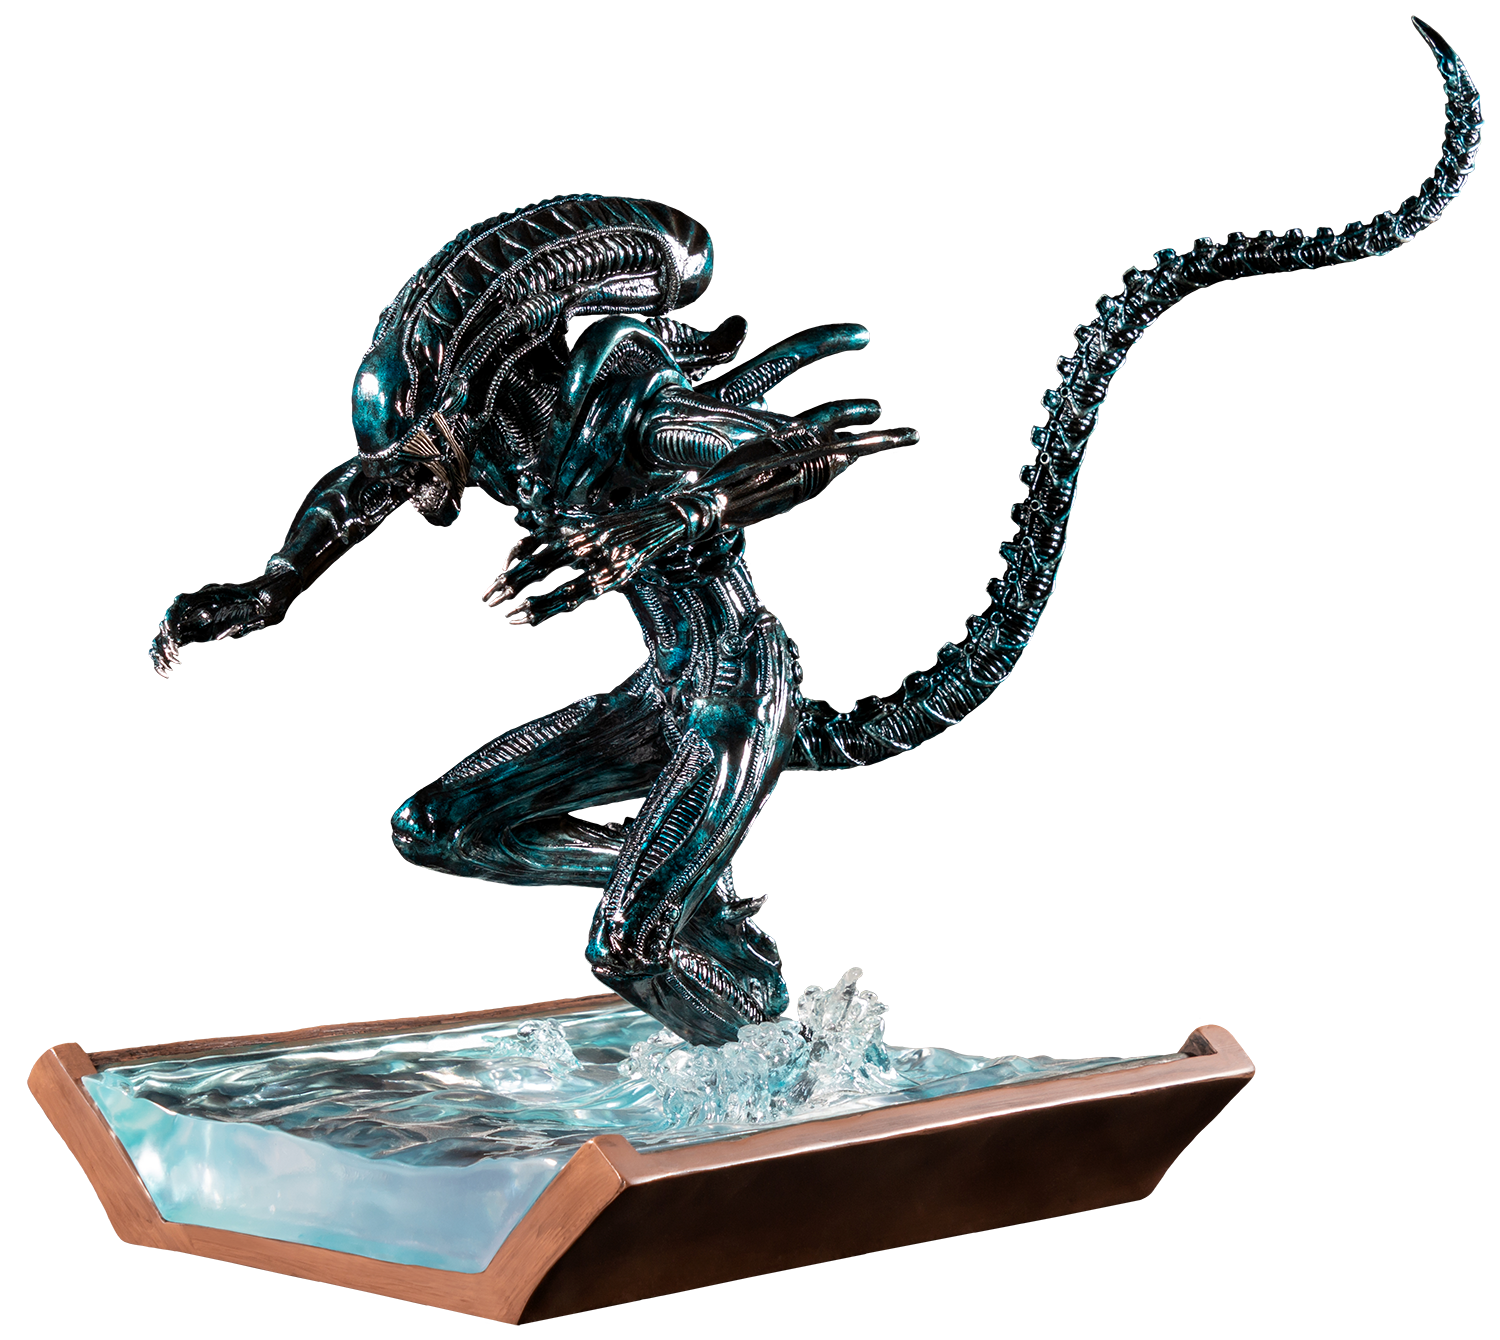 IKO1124-Alien-in-Water-Statue-New-Paint-3-308.png